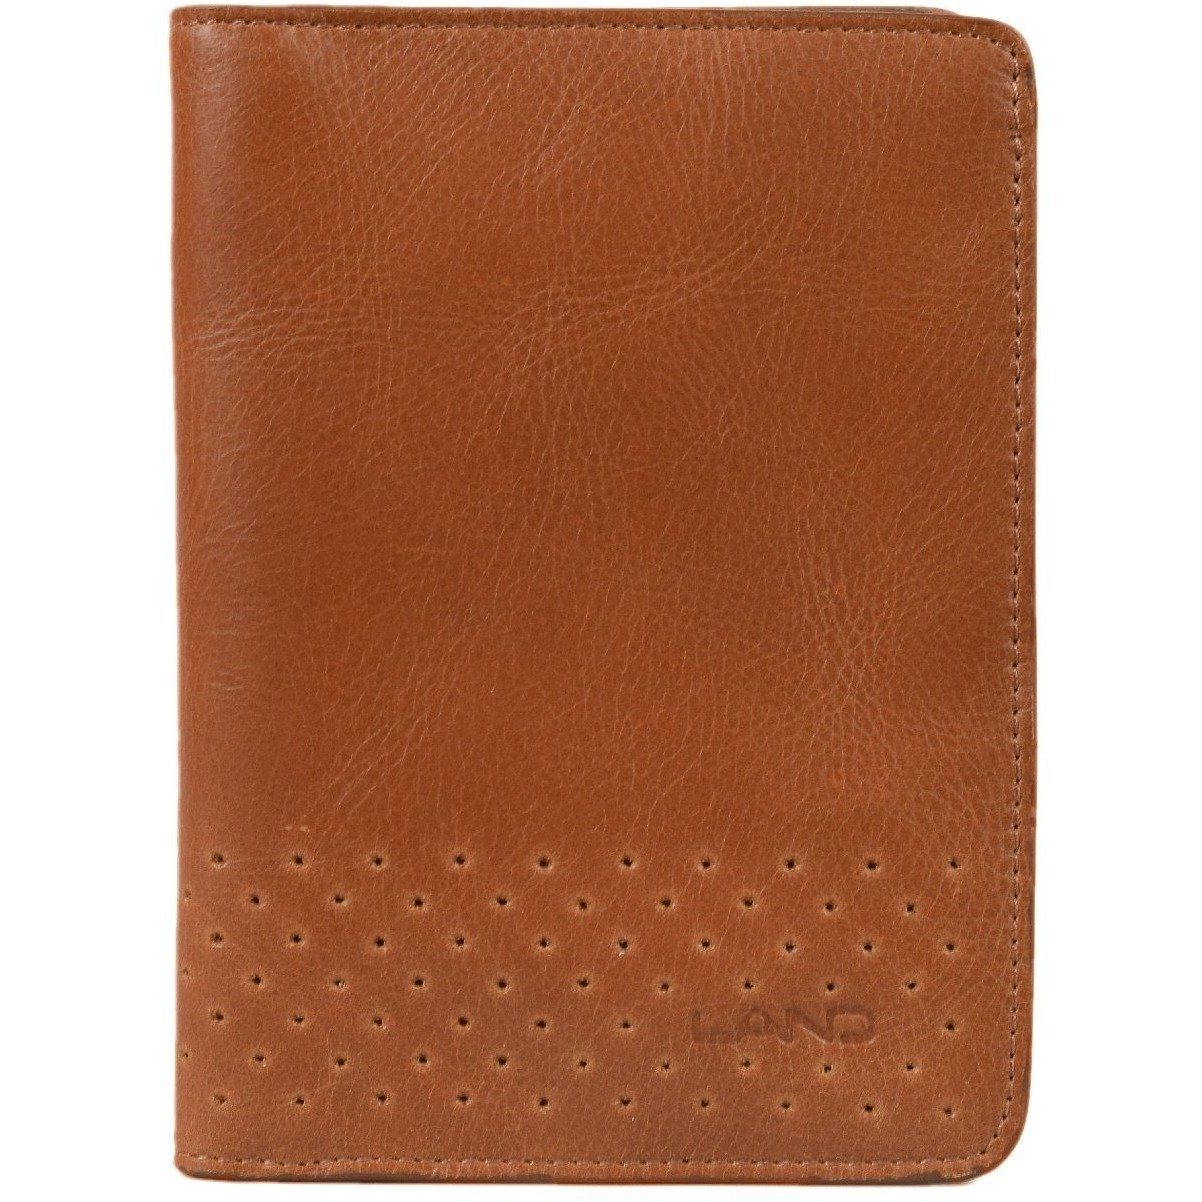 DuPont Passport Wallet